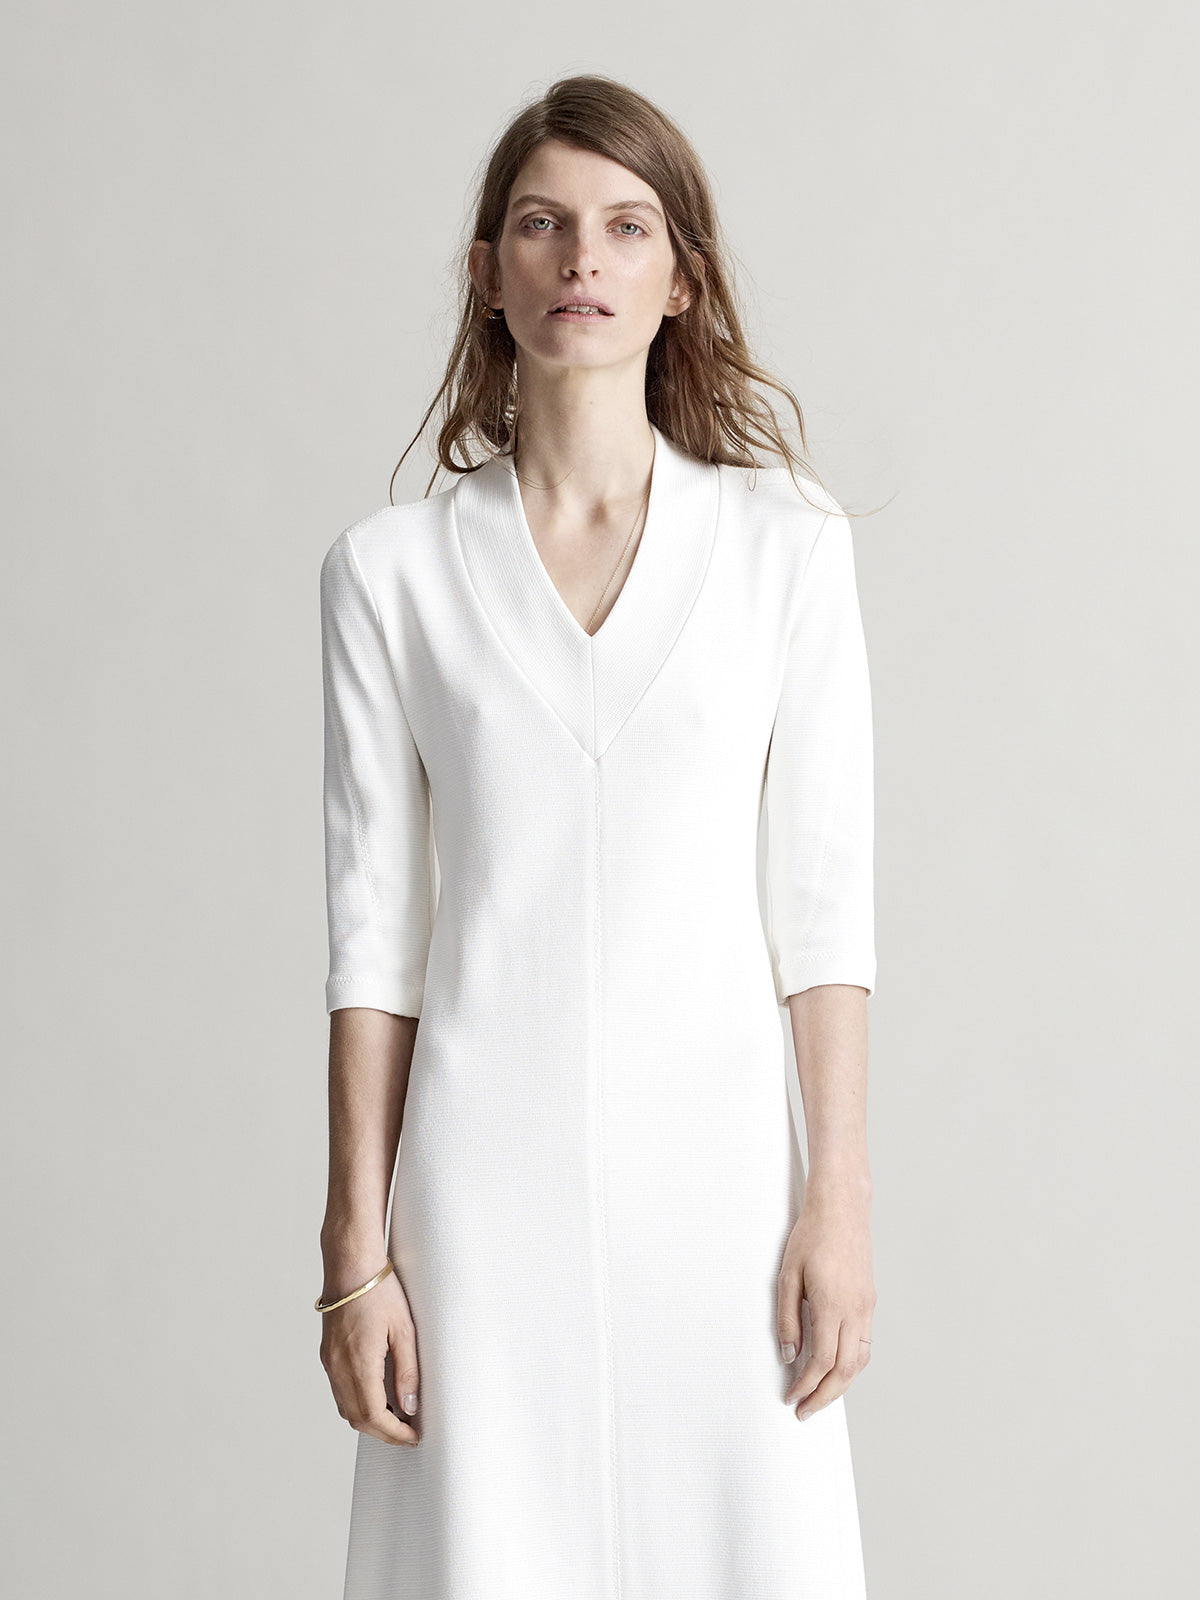 Emery Ivory Dress - Sykes London